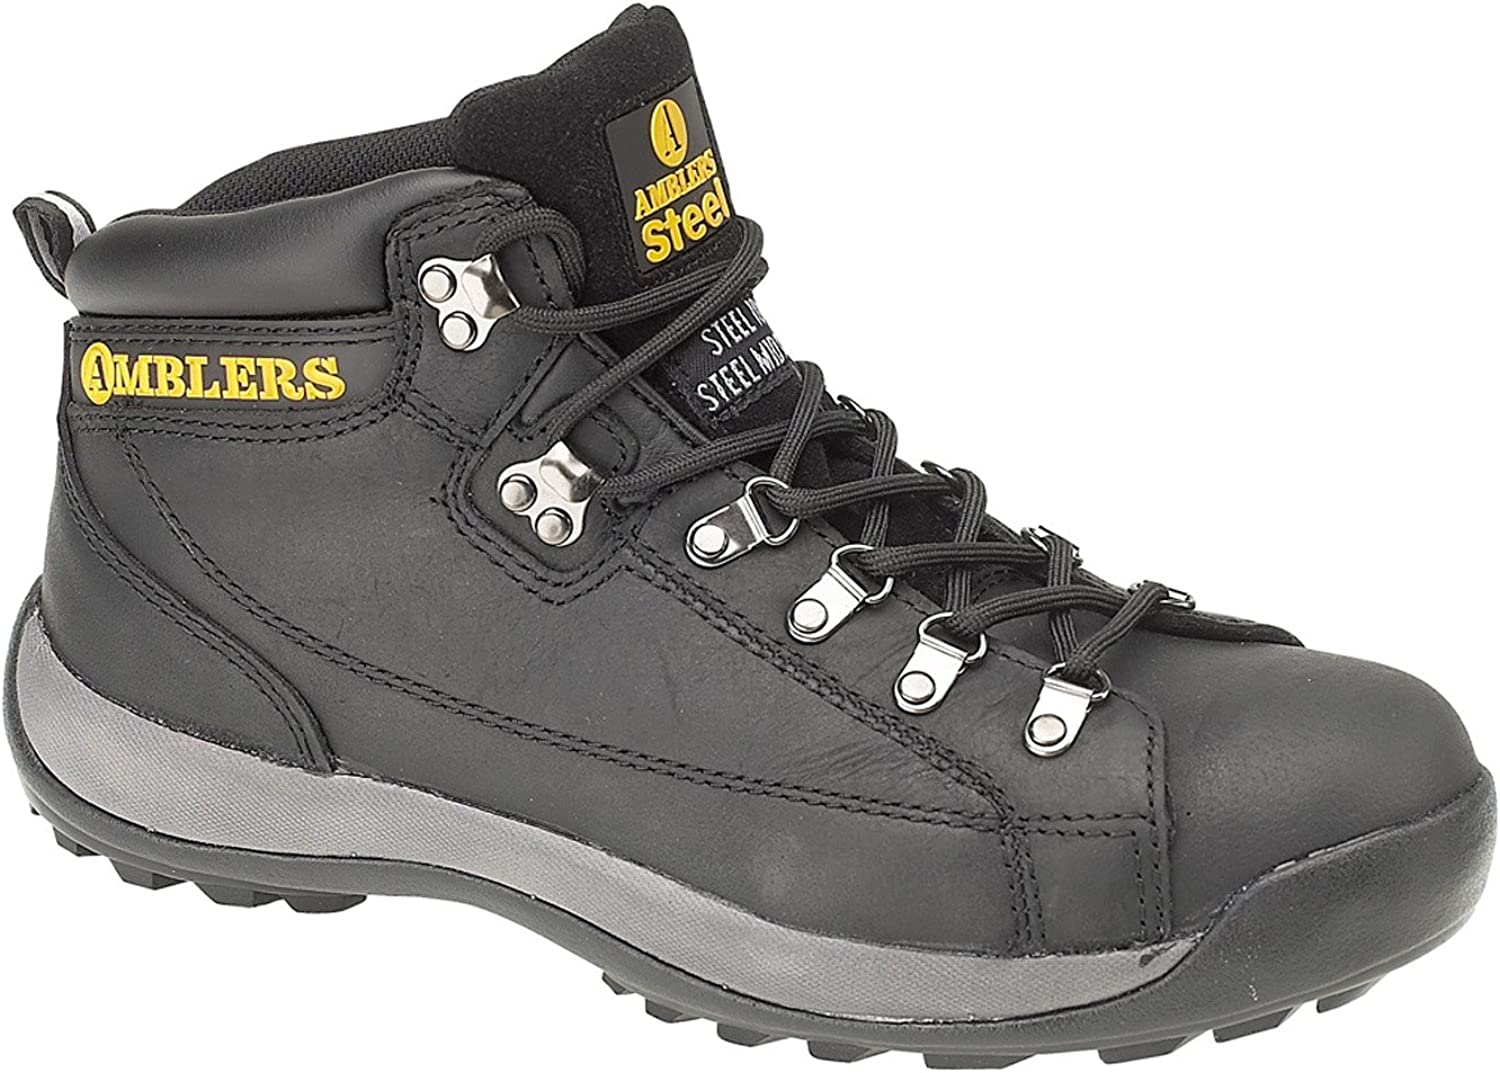 Amblers Steel FS123 Safety Boot   Mens Boots